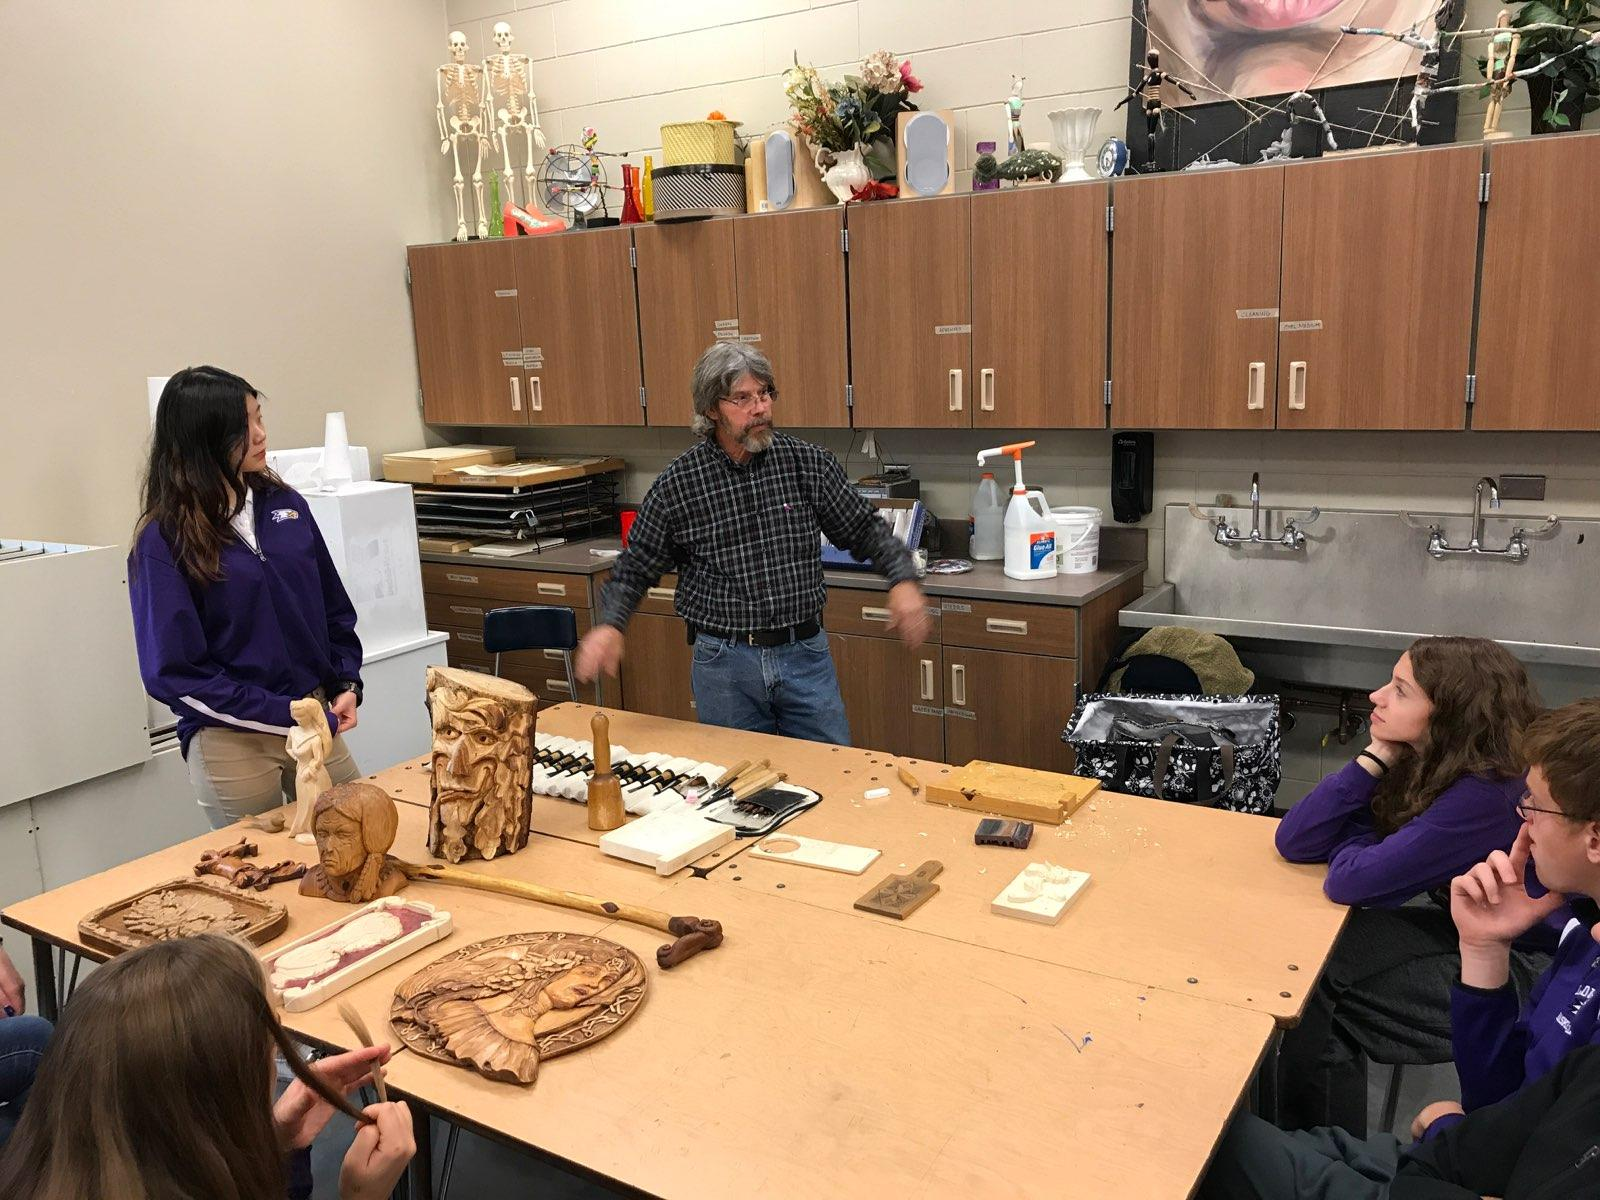 Tom Sursely; Local Wood Carver Visits LHS Sculpture Class